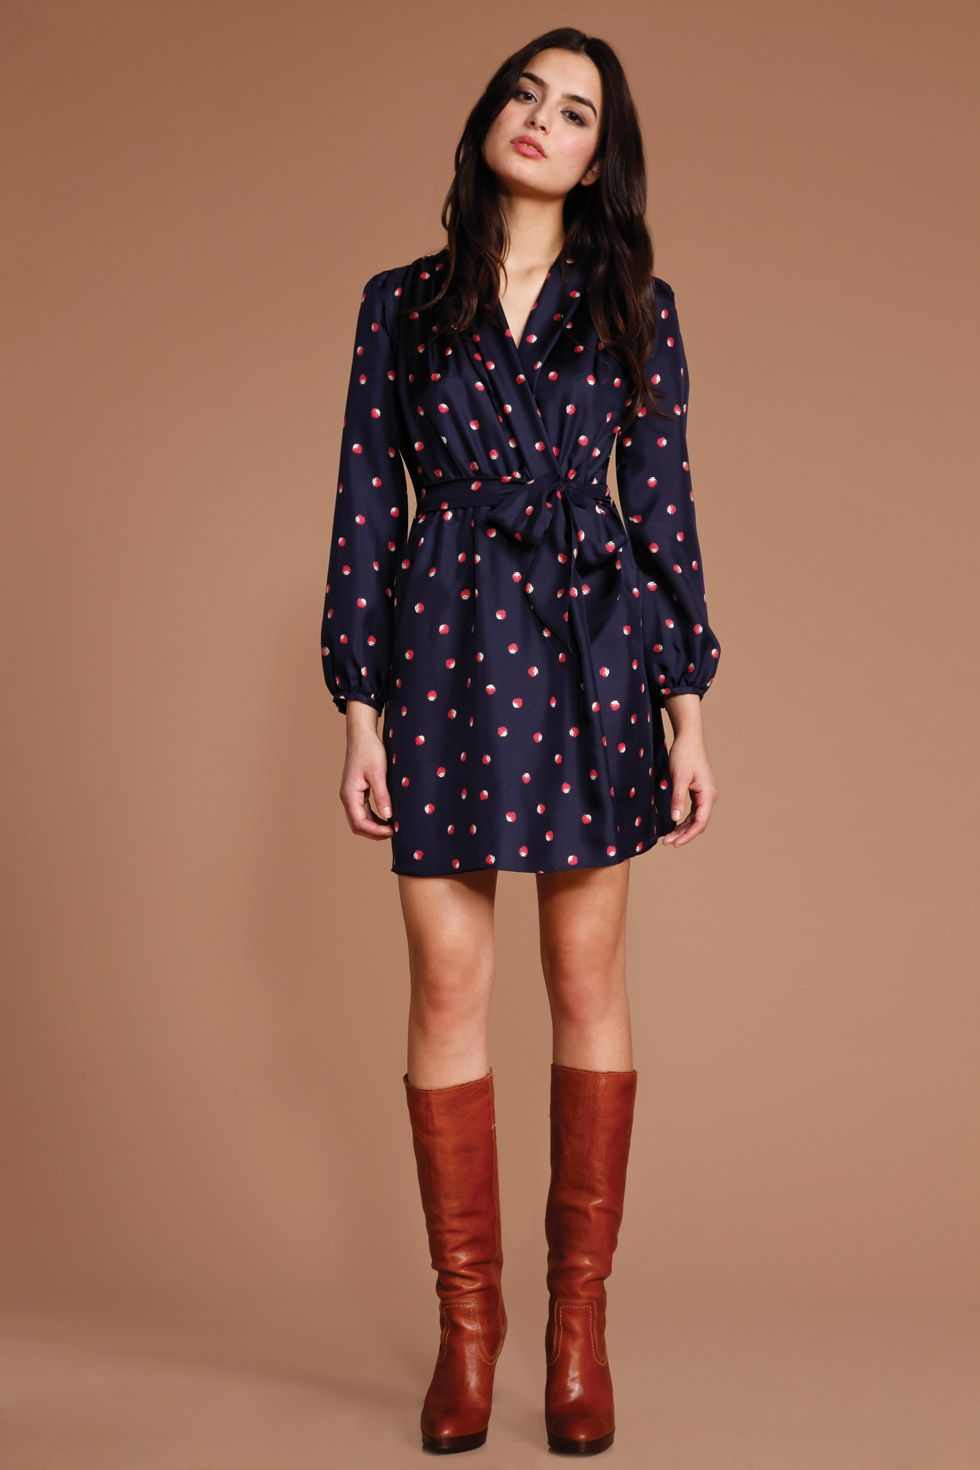 Wrap Dress With Boots For The Fall I Would Recommend